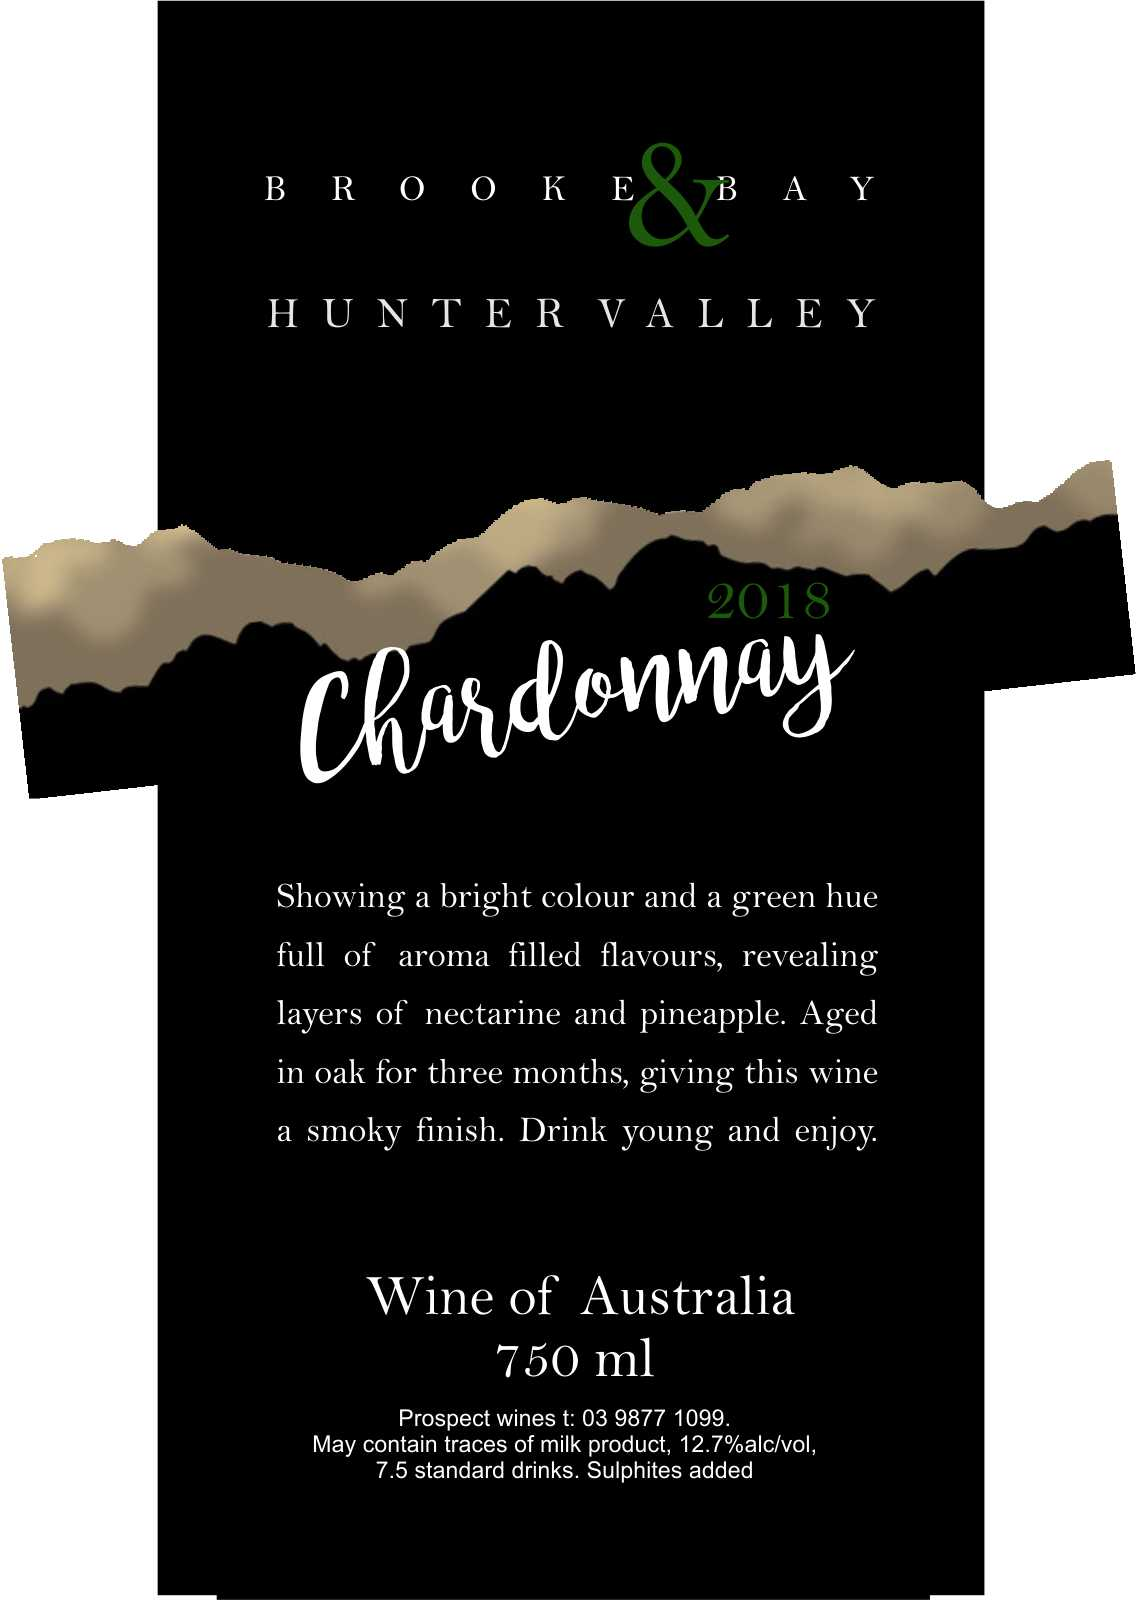 HUNTER VALLEY CHARDONNAY